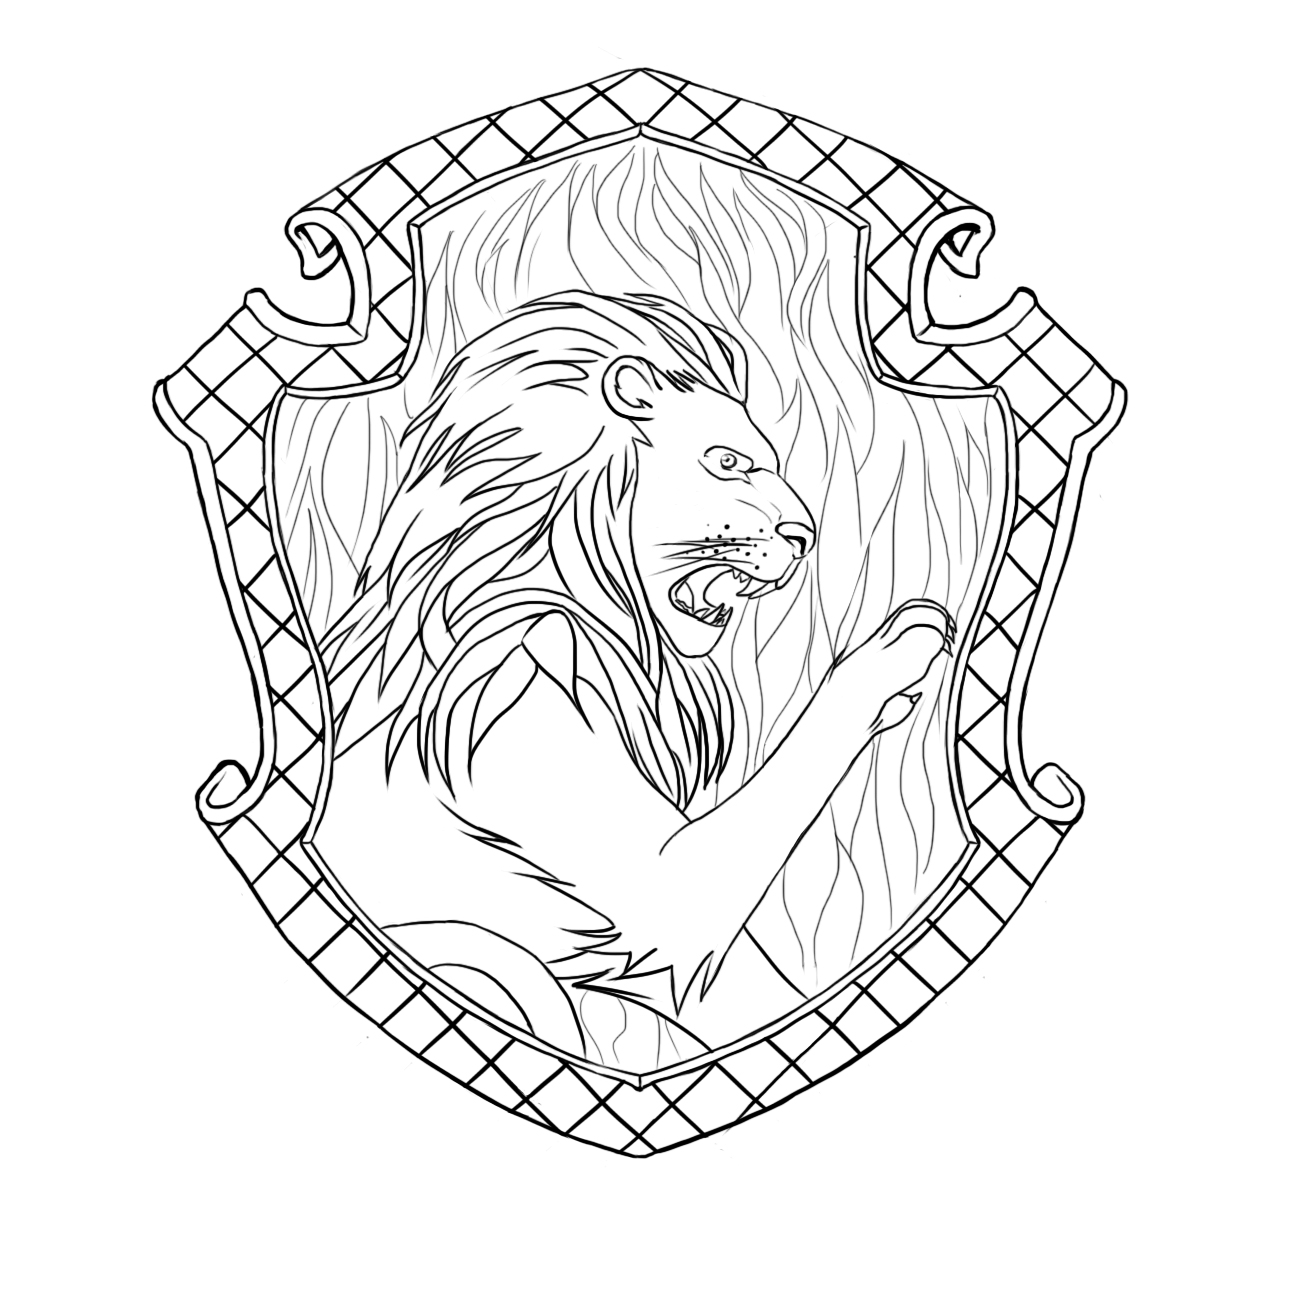 This is an image of Sweet hogwarts crest coloring page